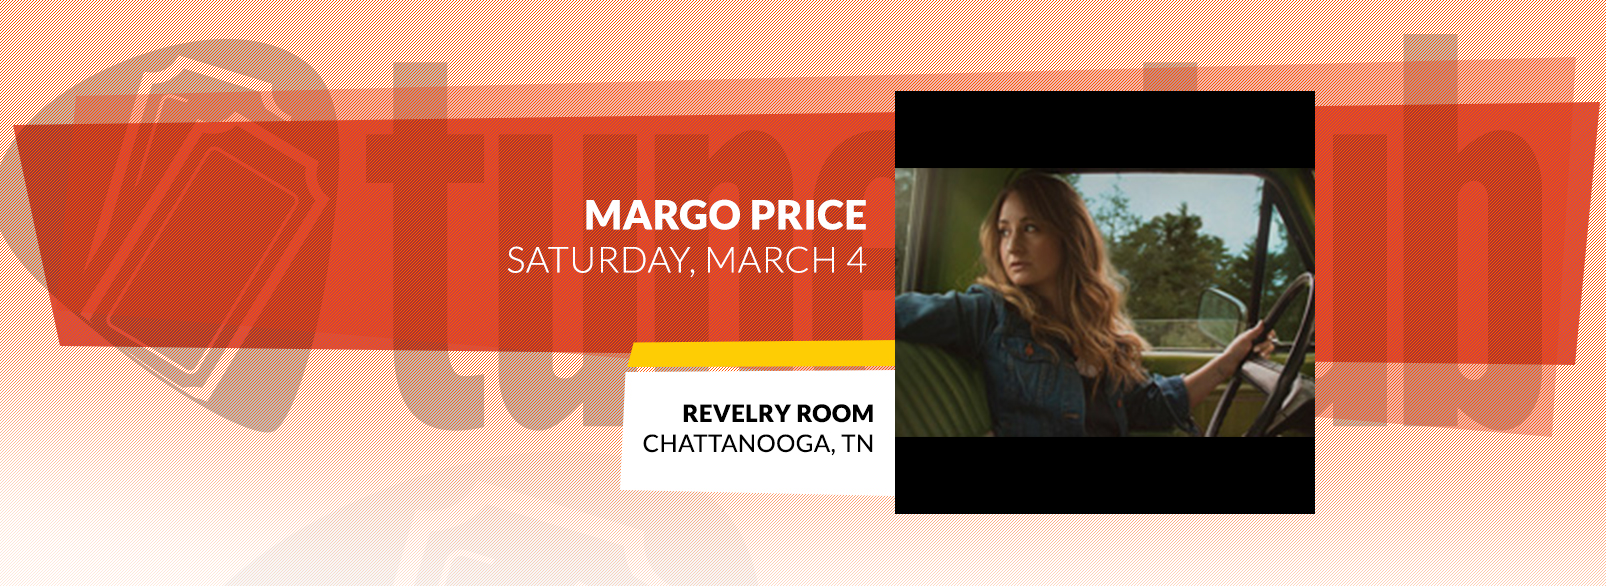 Margo Price @ Revelry Room